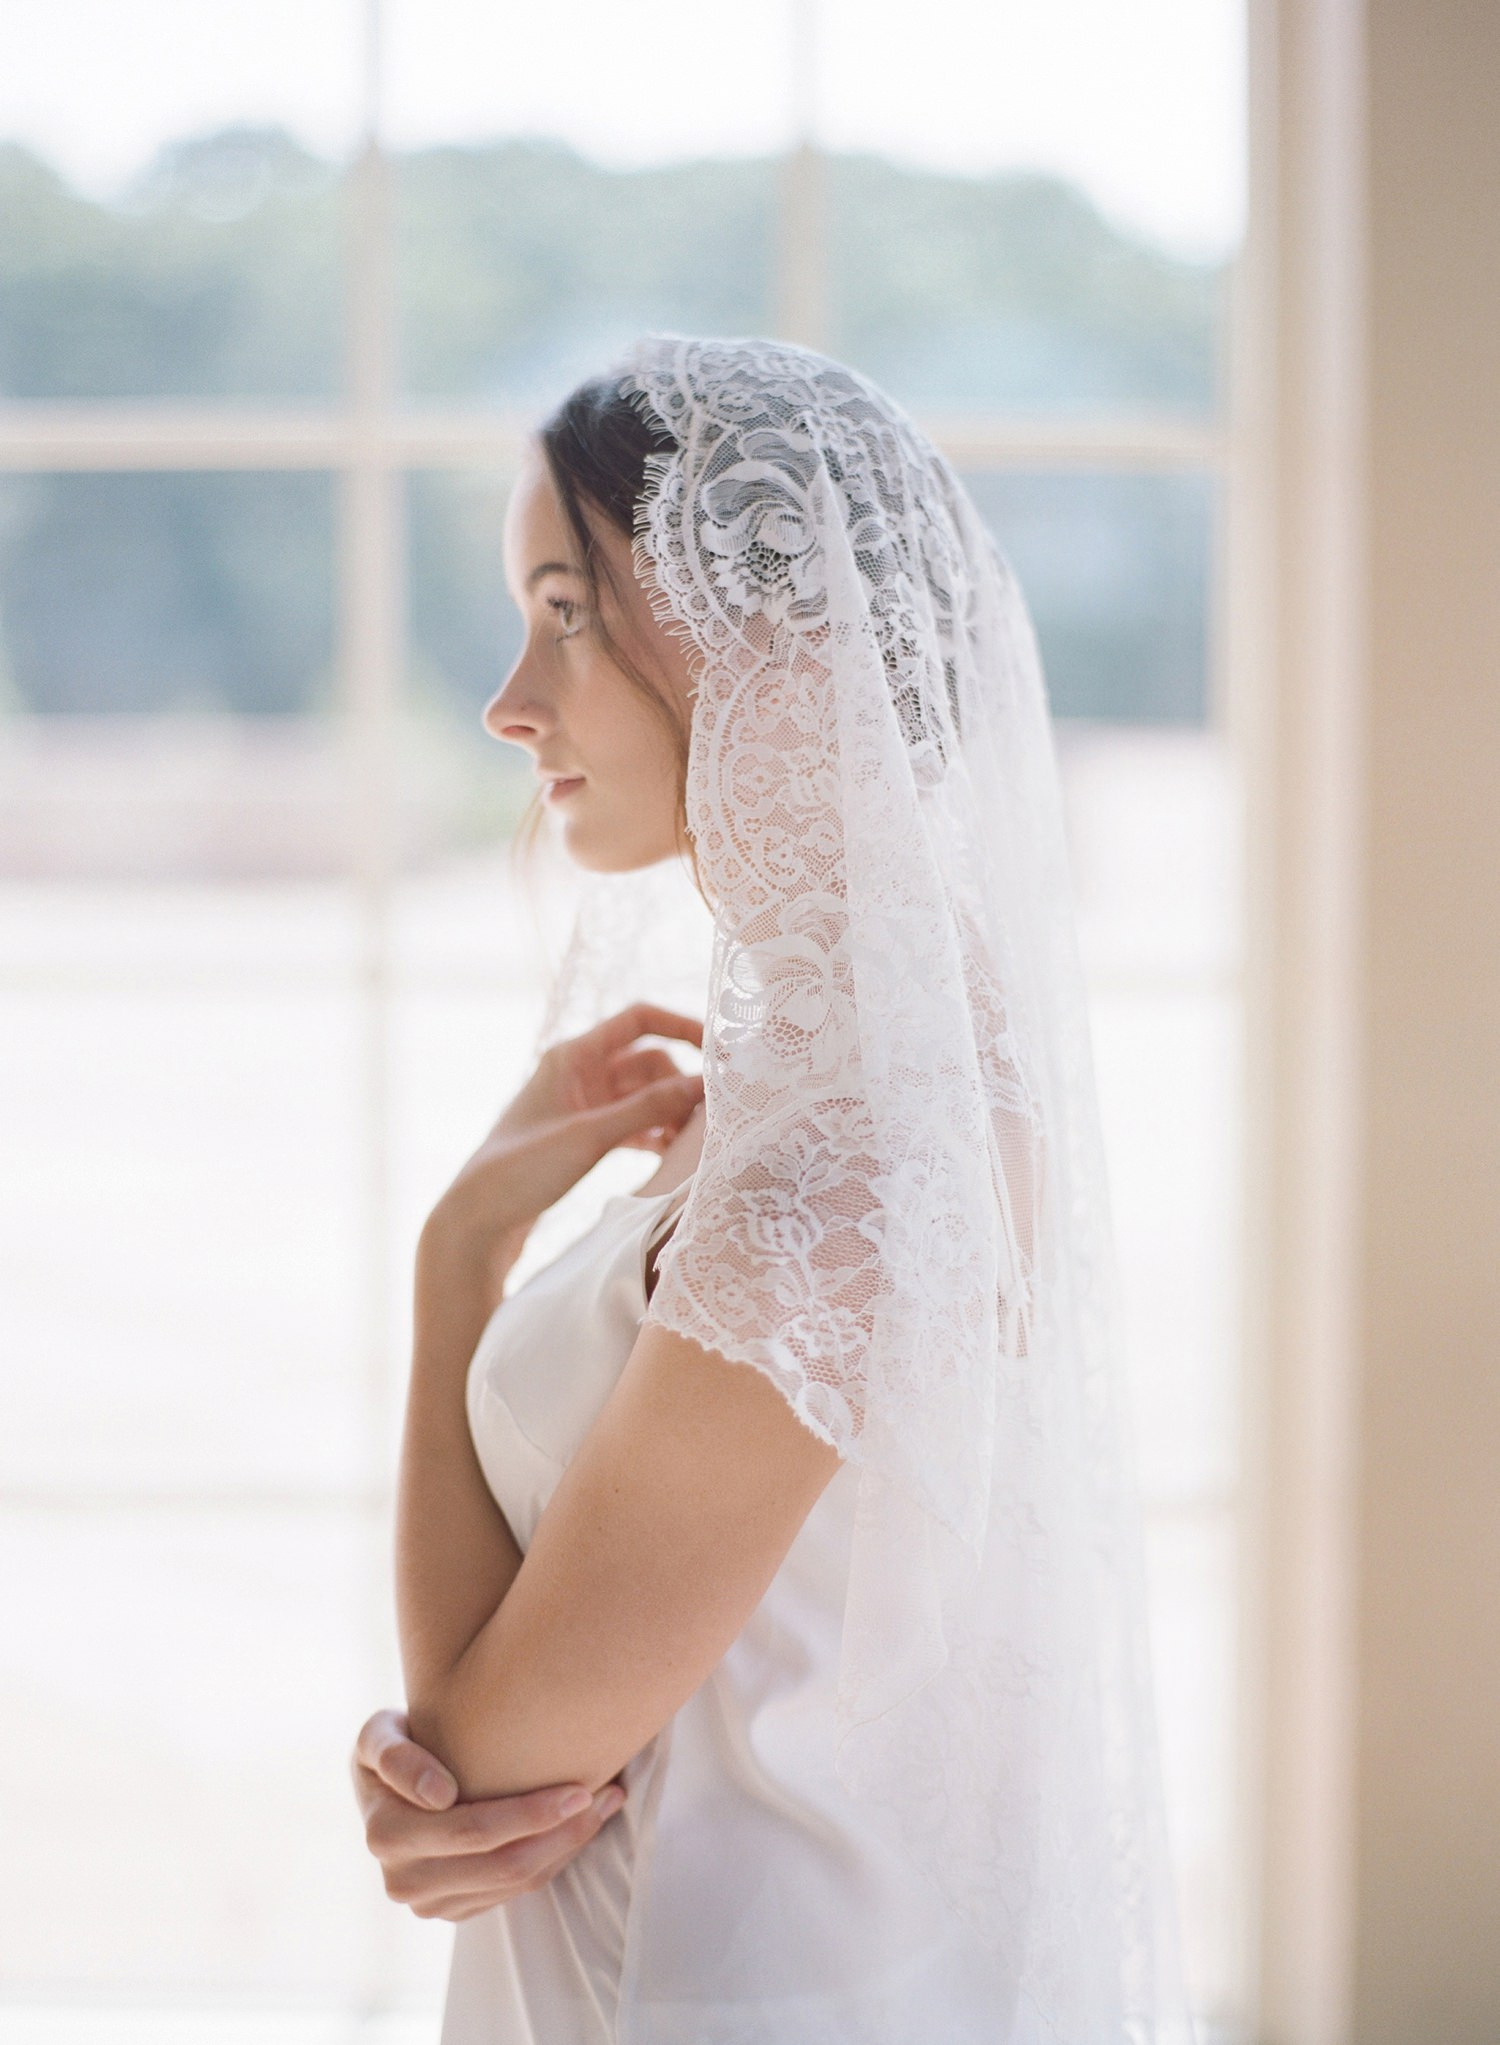 dc bridal photographer